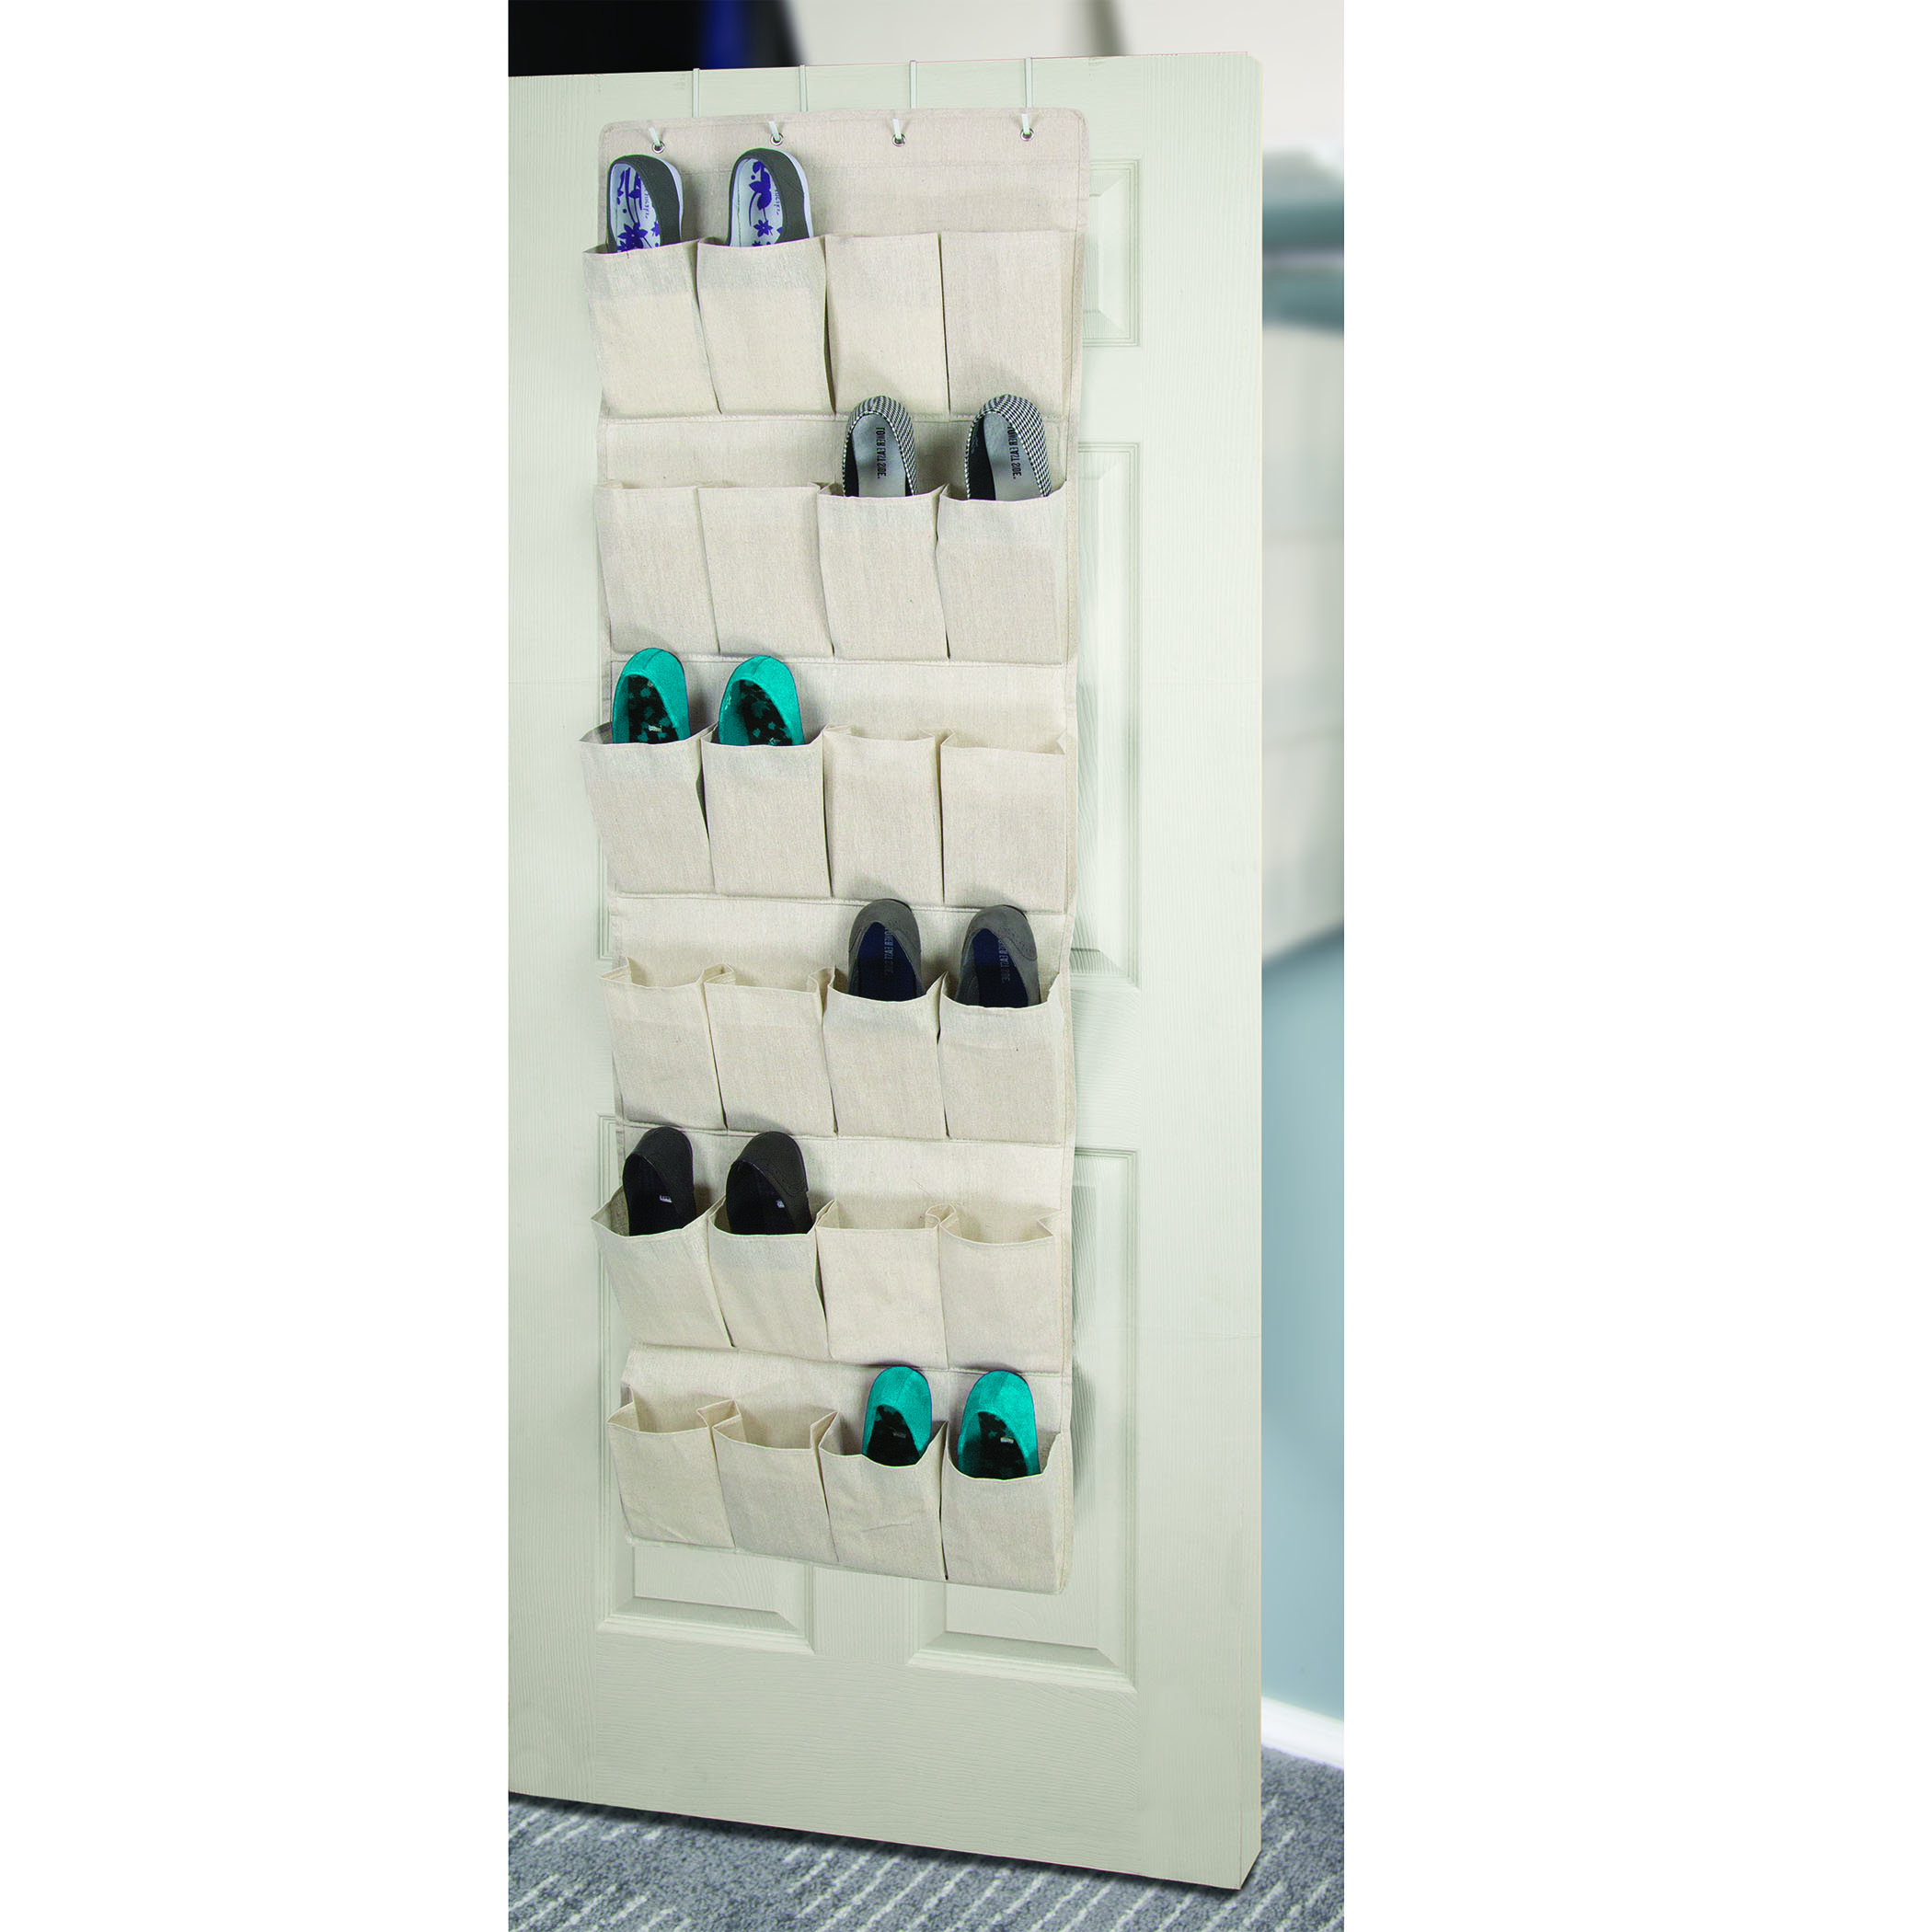 storage canvas 24 pocket over the door shoe organizer. Black Bedroom Furniture Sets. Home Design Ideas